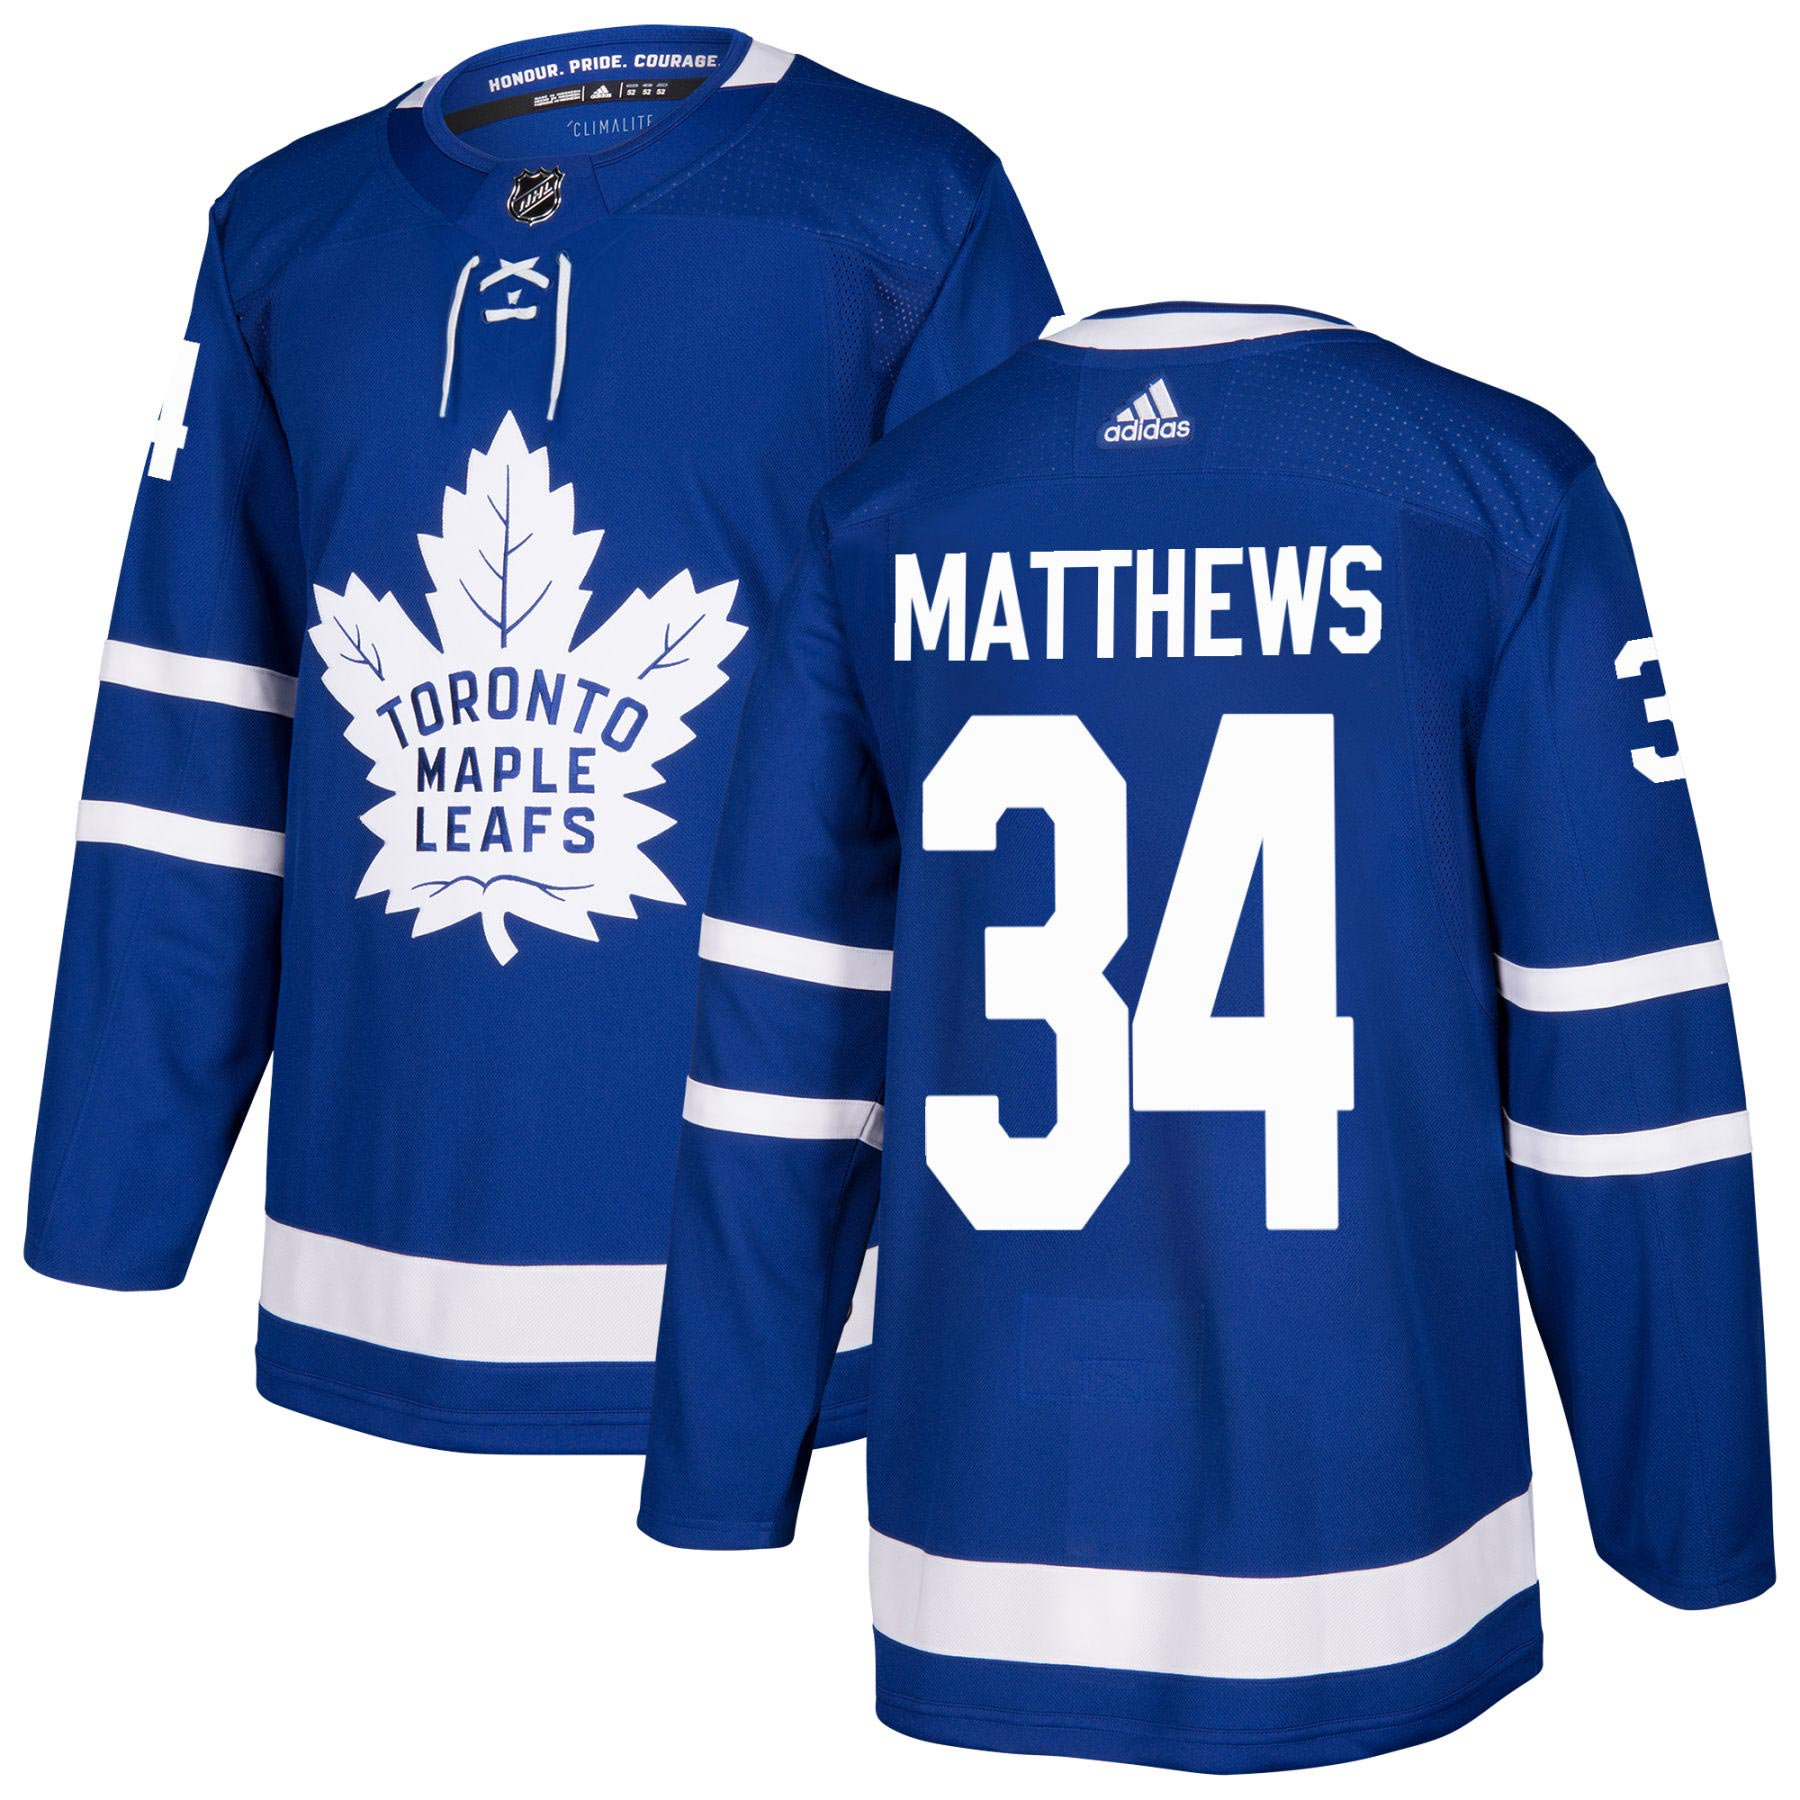 sale retailer 39cde d2335 Maple Leafs Nhl Jersey Toronto intangible.adamperks.com